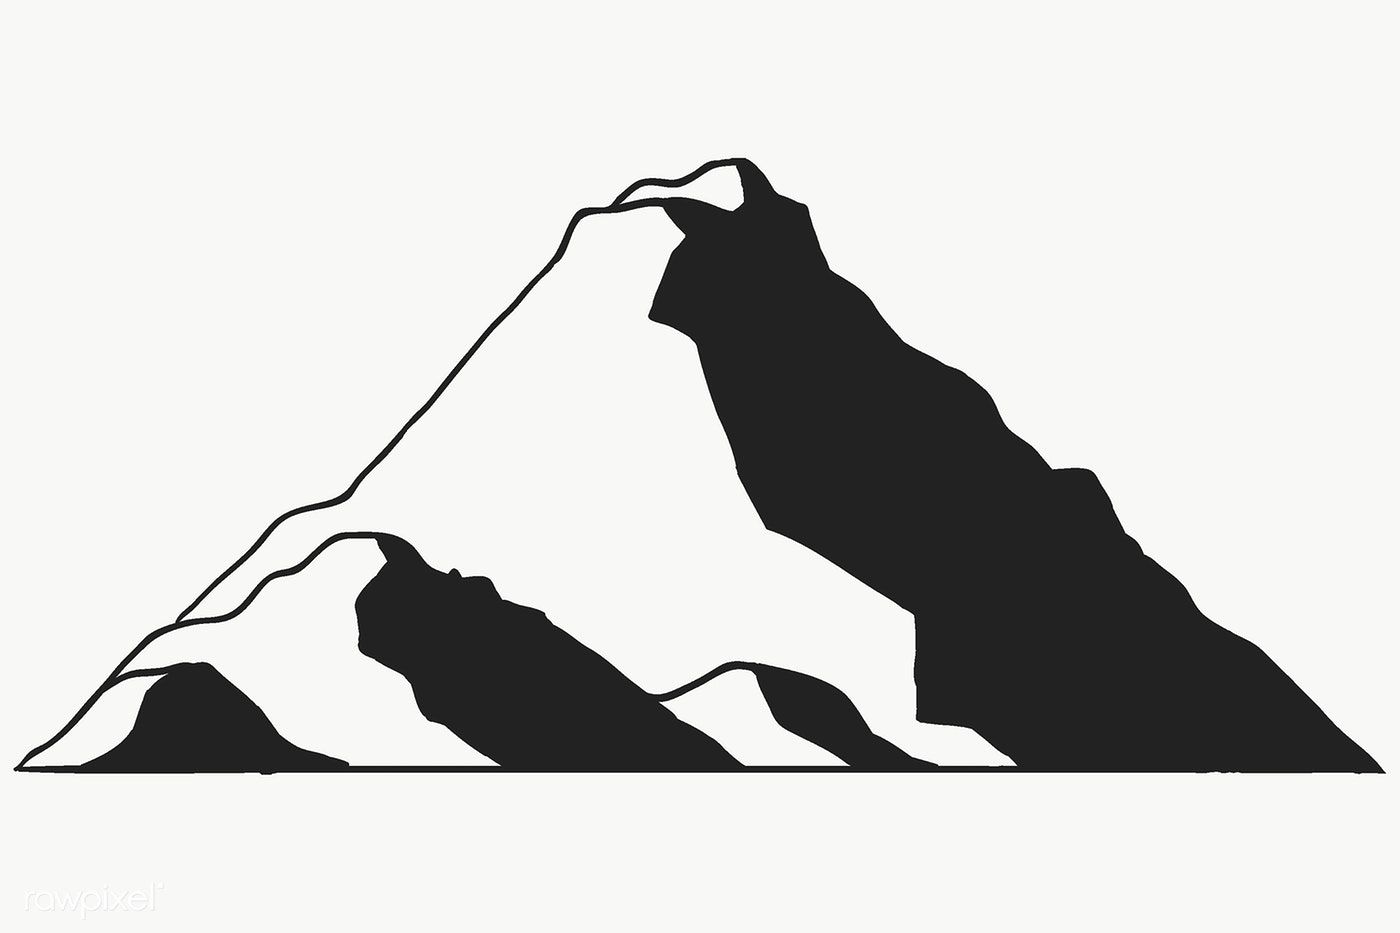 Mountain Shape For Logo Transparent Png Free Image By Rawpixel Com Te Mountain Images Stock Images Free Png